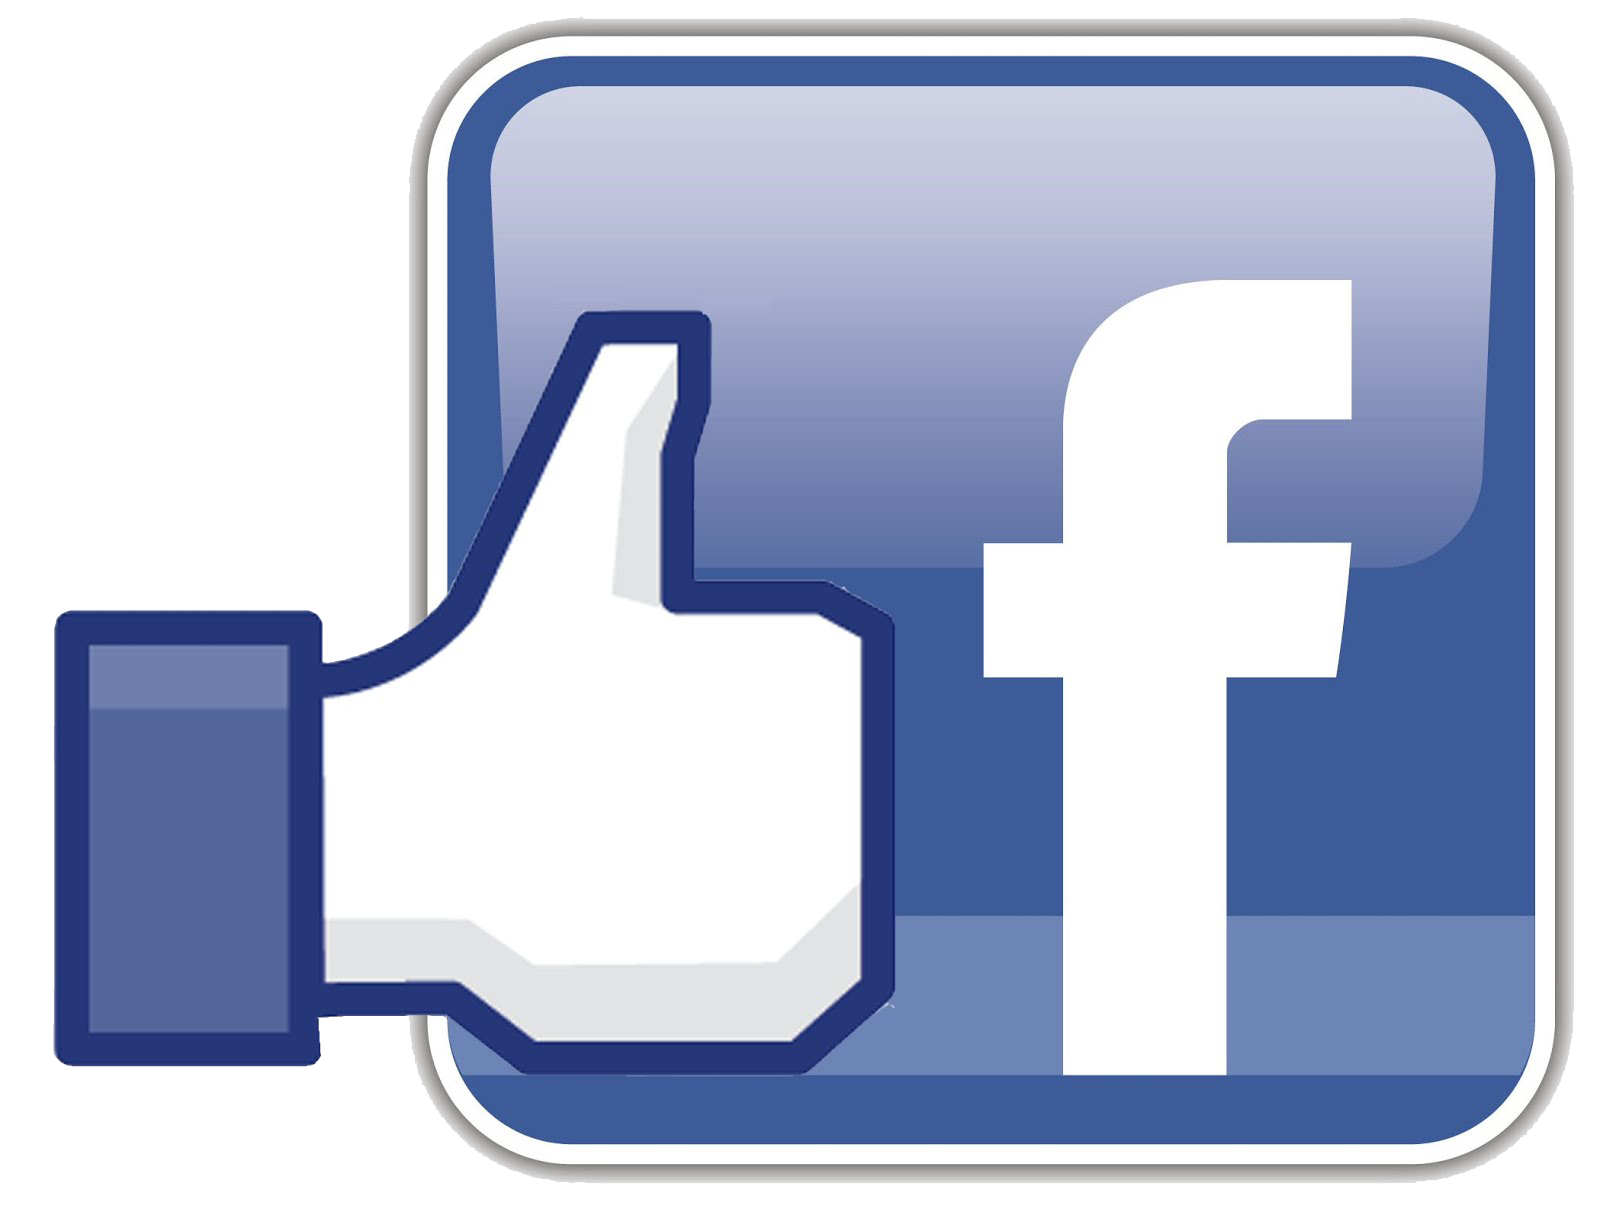 Clipart face book, Clipart face book Transparent FREE for.